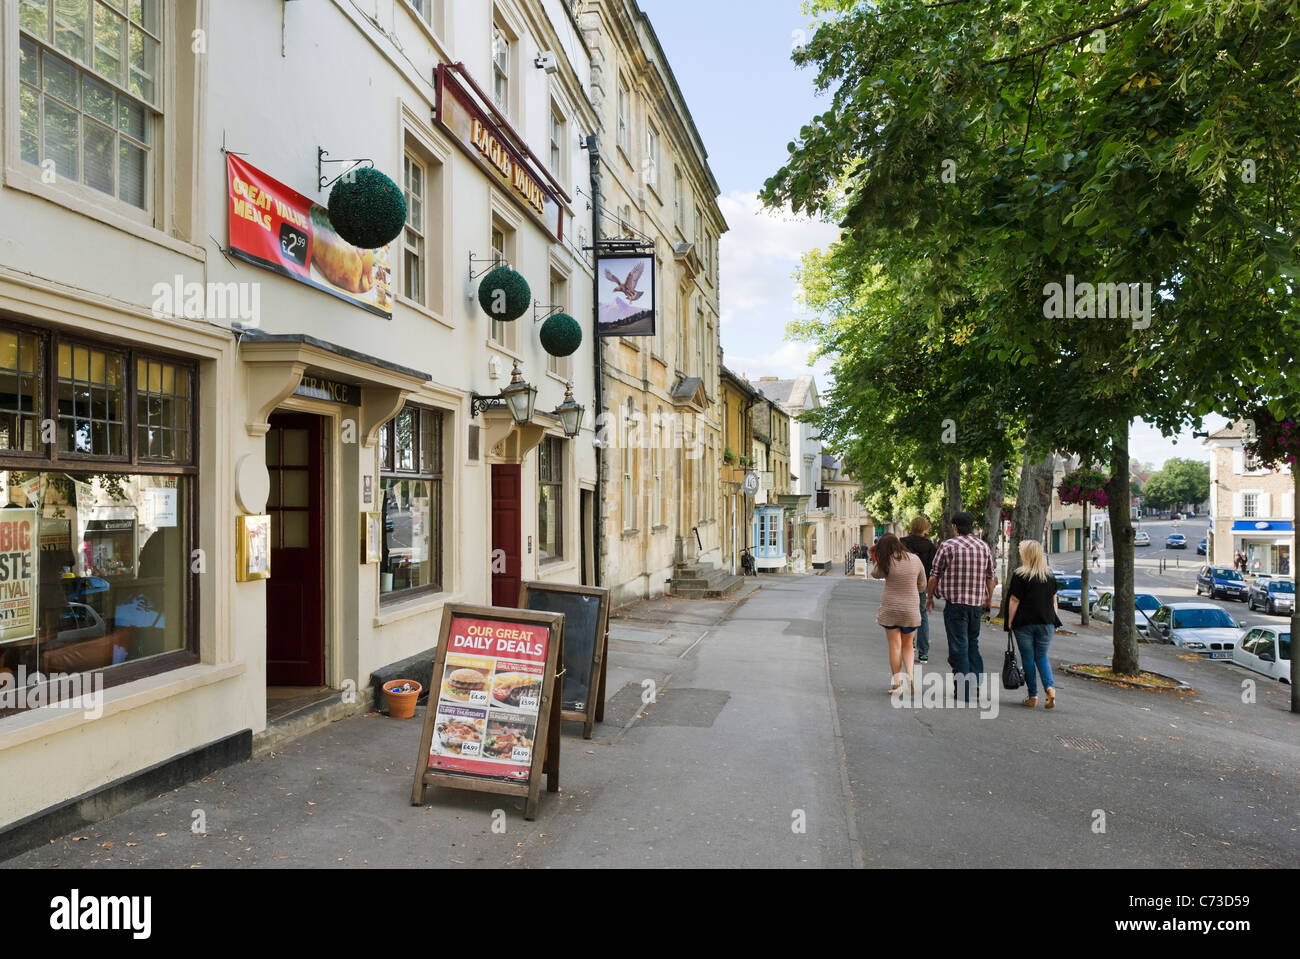 Eagle Vaults Pub on the High Street in Witney, Oxfordshire, England, UK - Stock Image